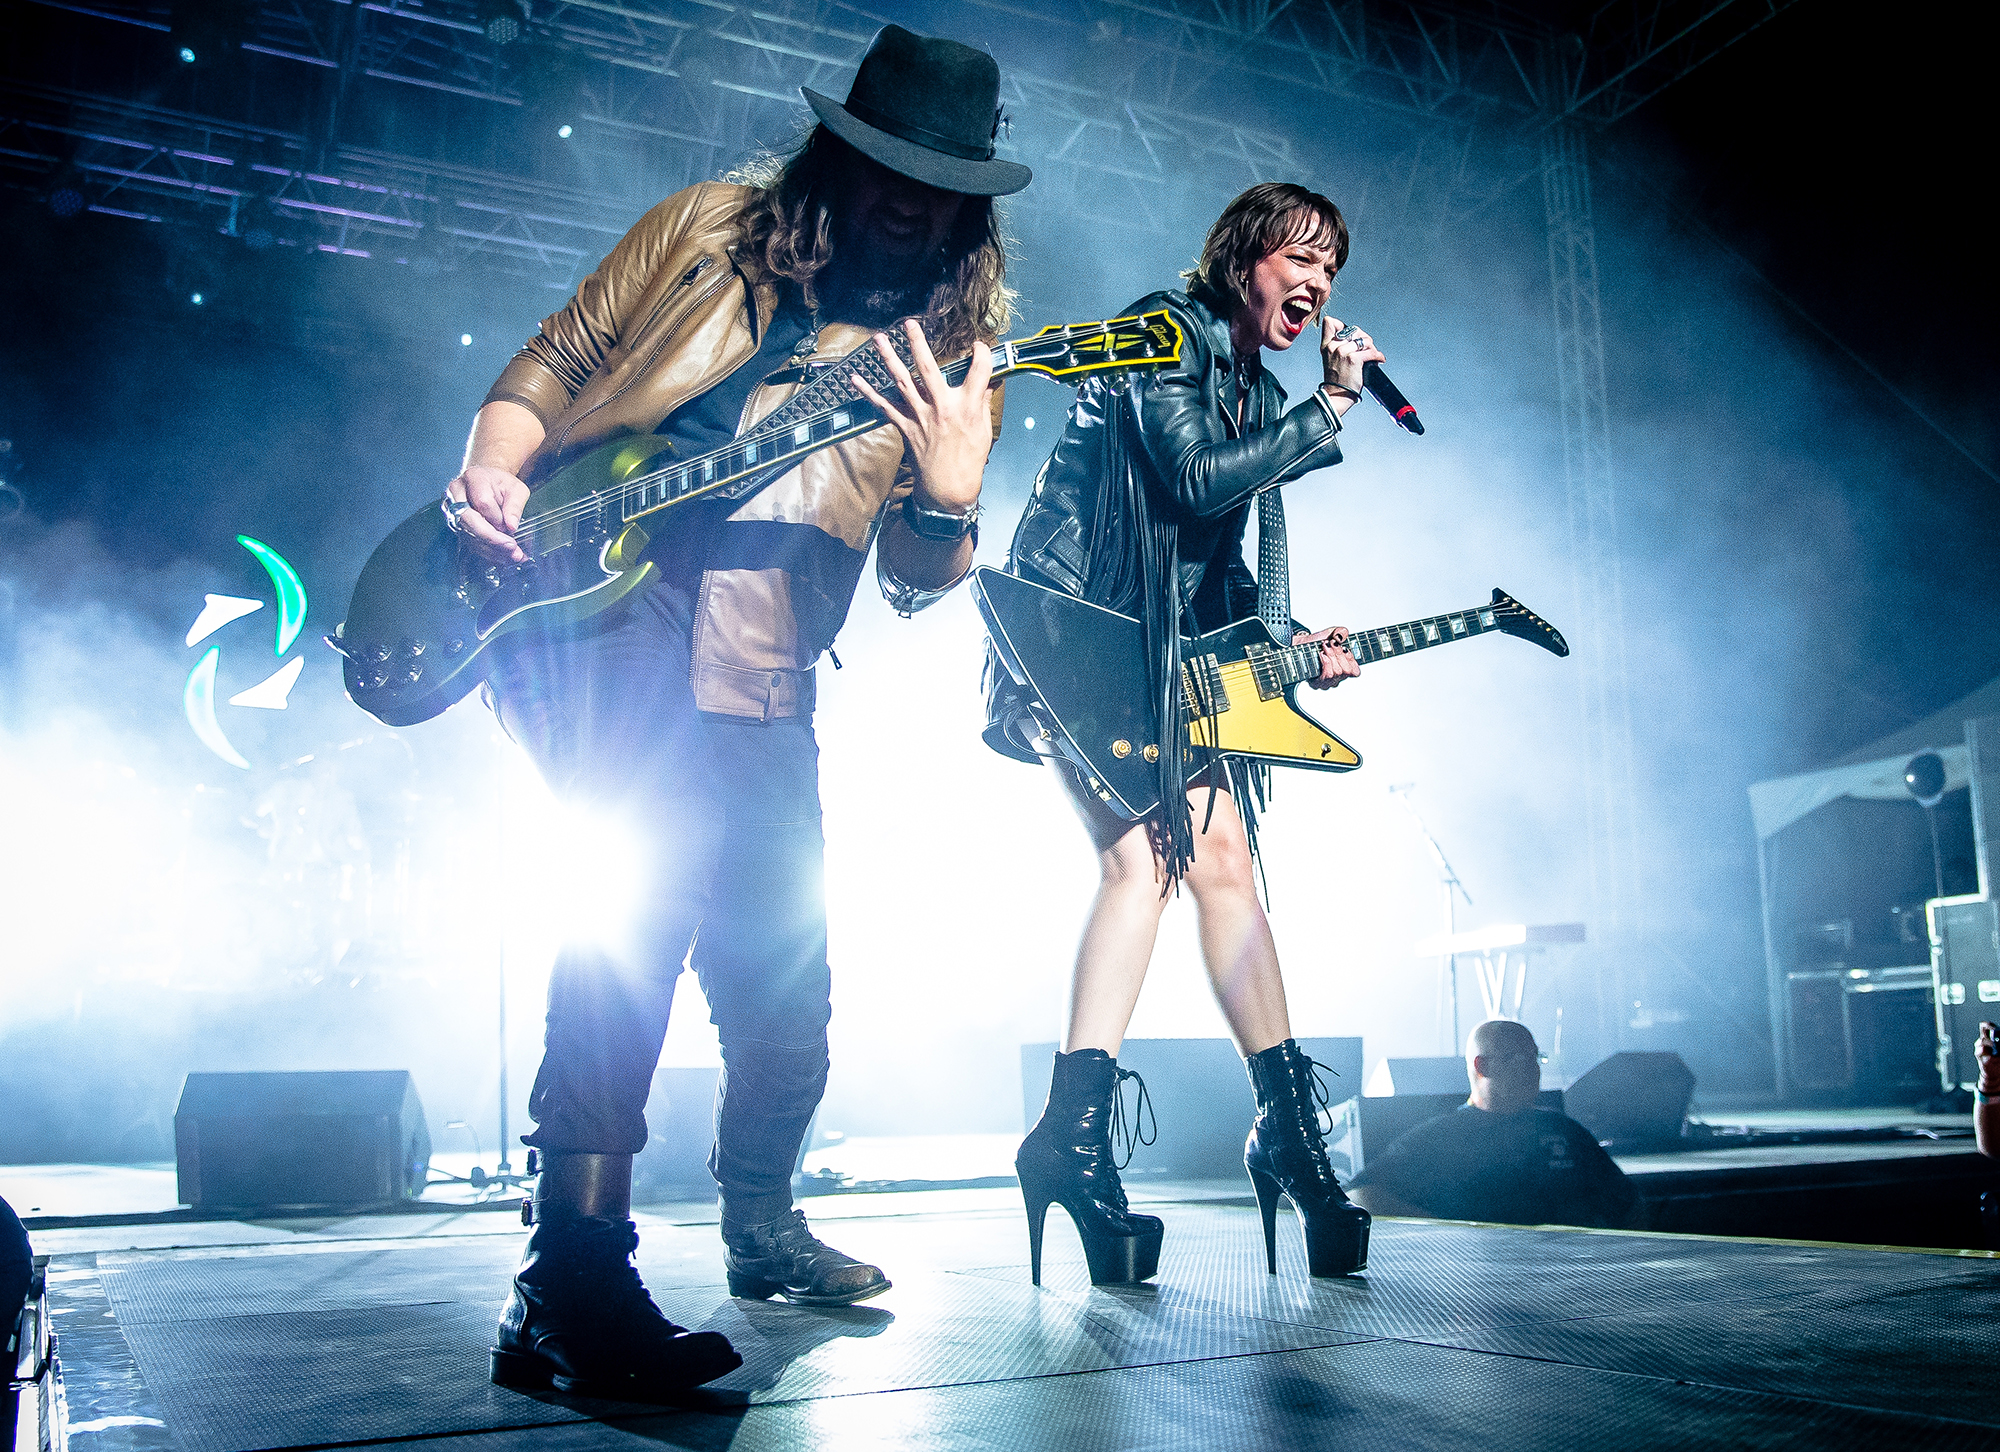 Lead singer and guitarist Lzzy Hale and guitarist Joe Hottinger perform with Halestorm as the band performs on the Grandstand Stage during the Illinois State Fair, Saturday, Aug. 11, 2018, in Springfield, Ill. [Justin L. Fowler/The State Journal-Register]